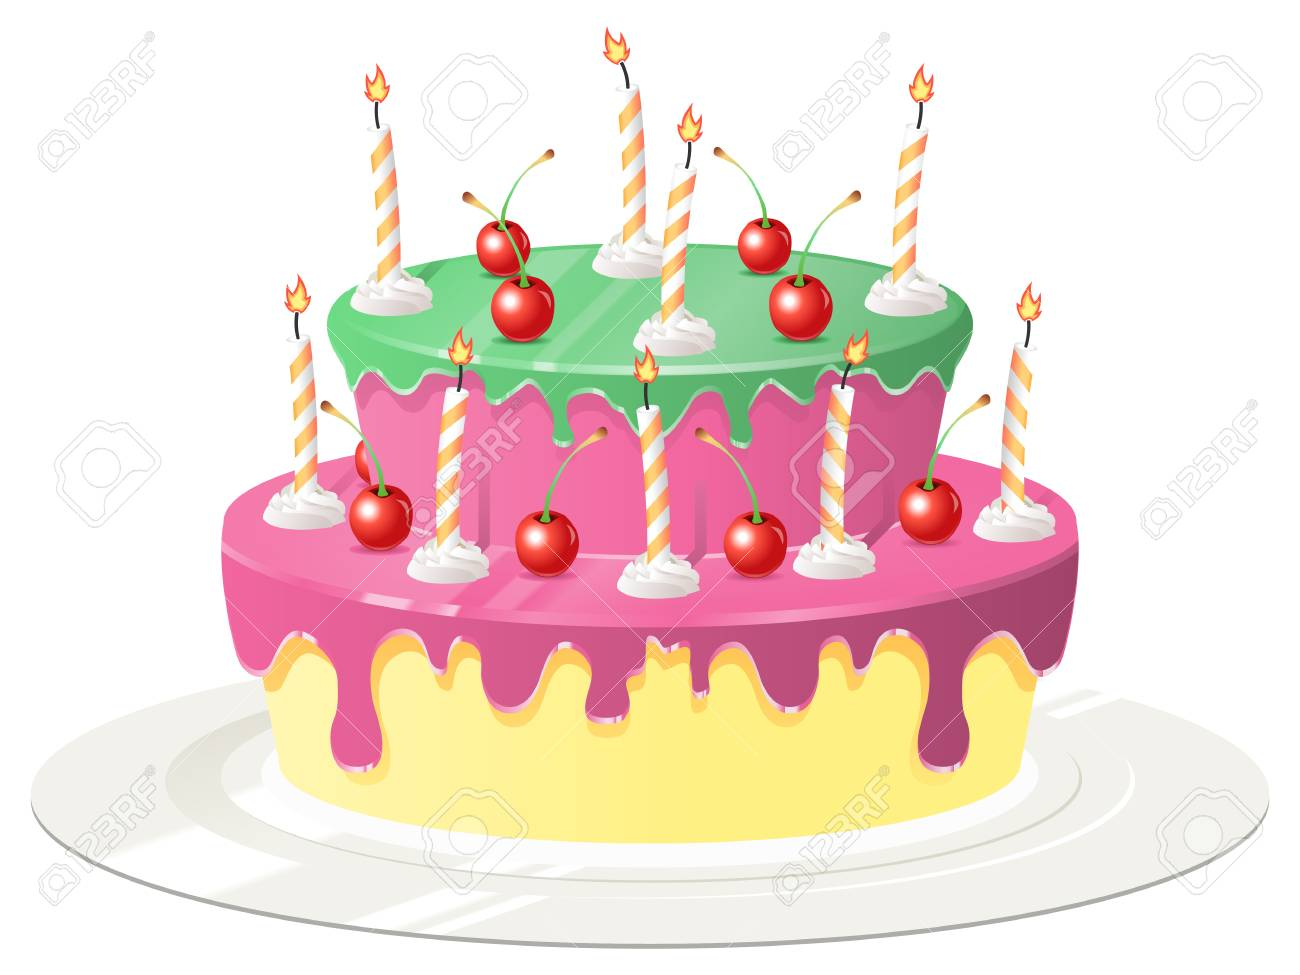 Birthday Cake Images Vektor ~ Isolated birthday cake with candles and cherries royalty free